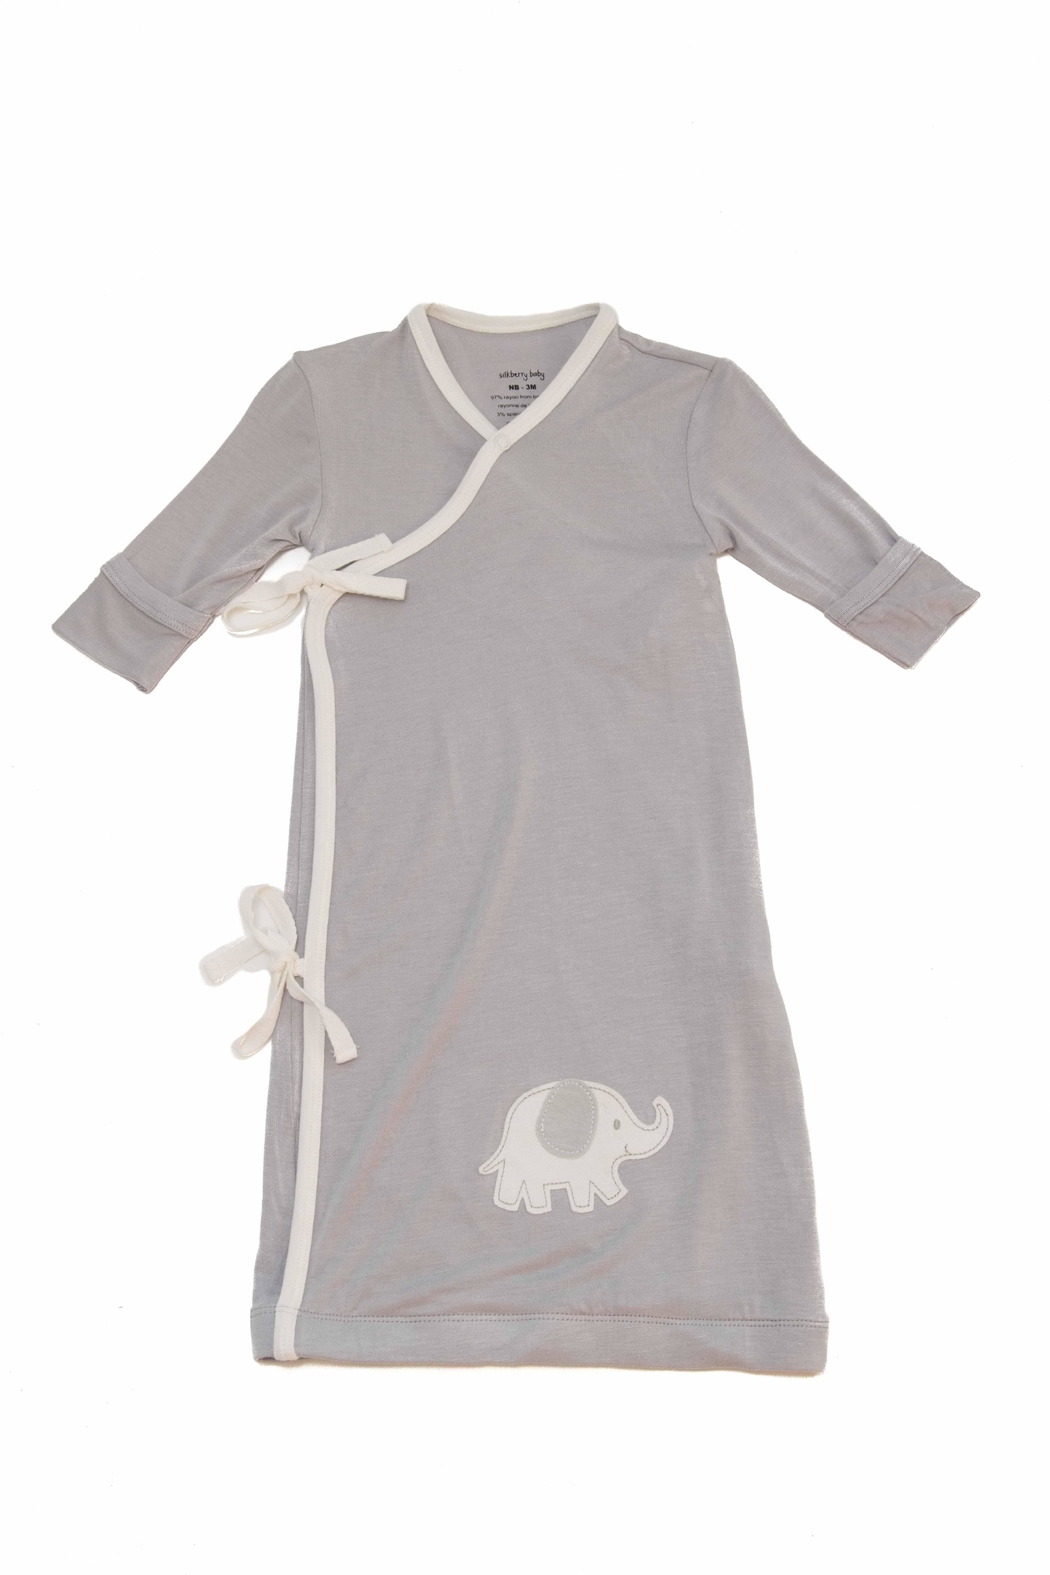 silkberry baby Kimono Sleeper Gown from Ontario by Esby&Soph ...